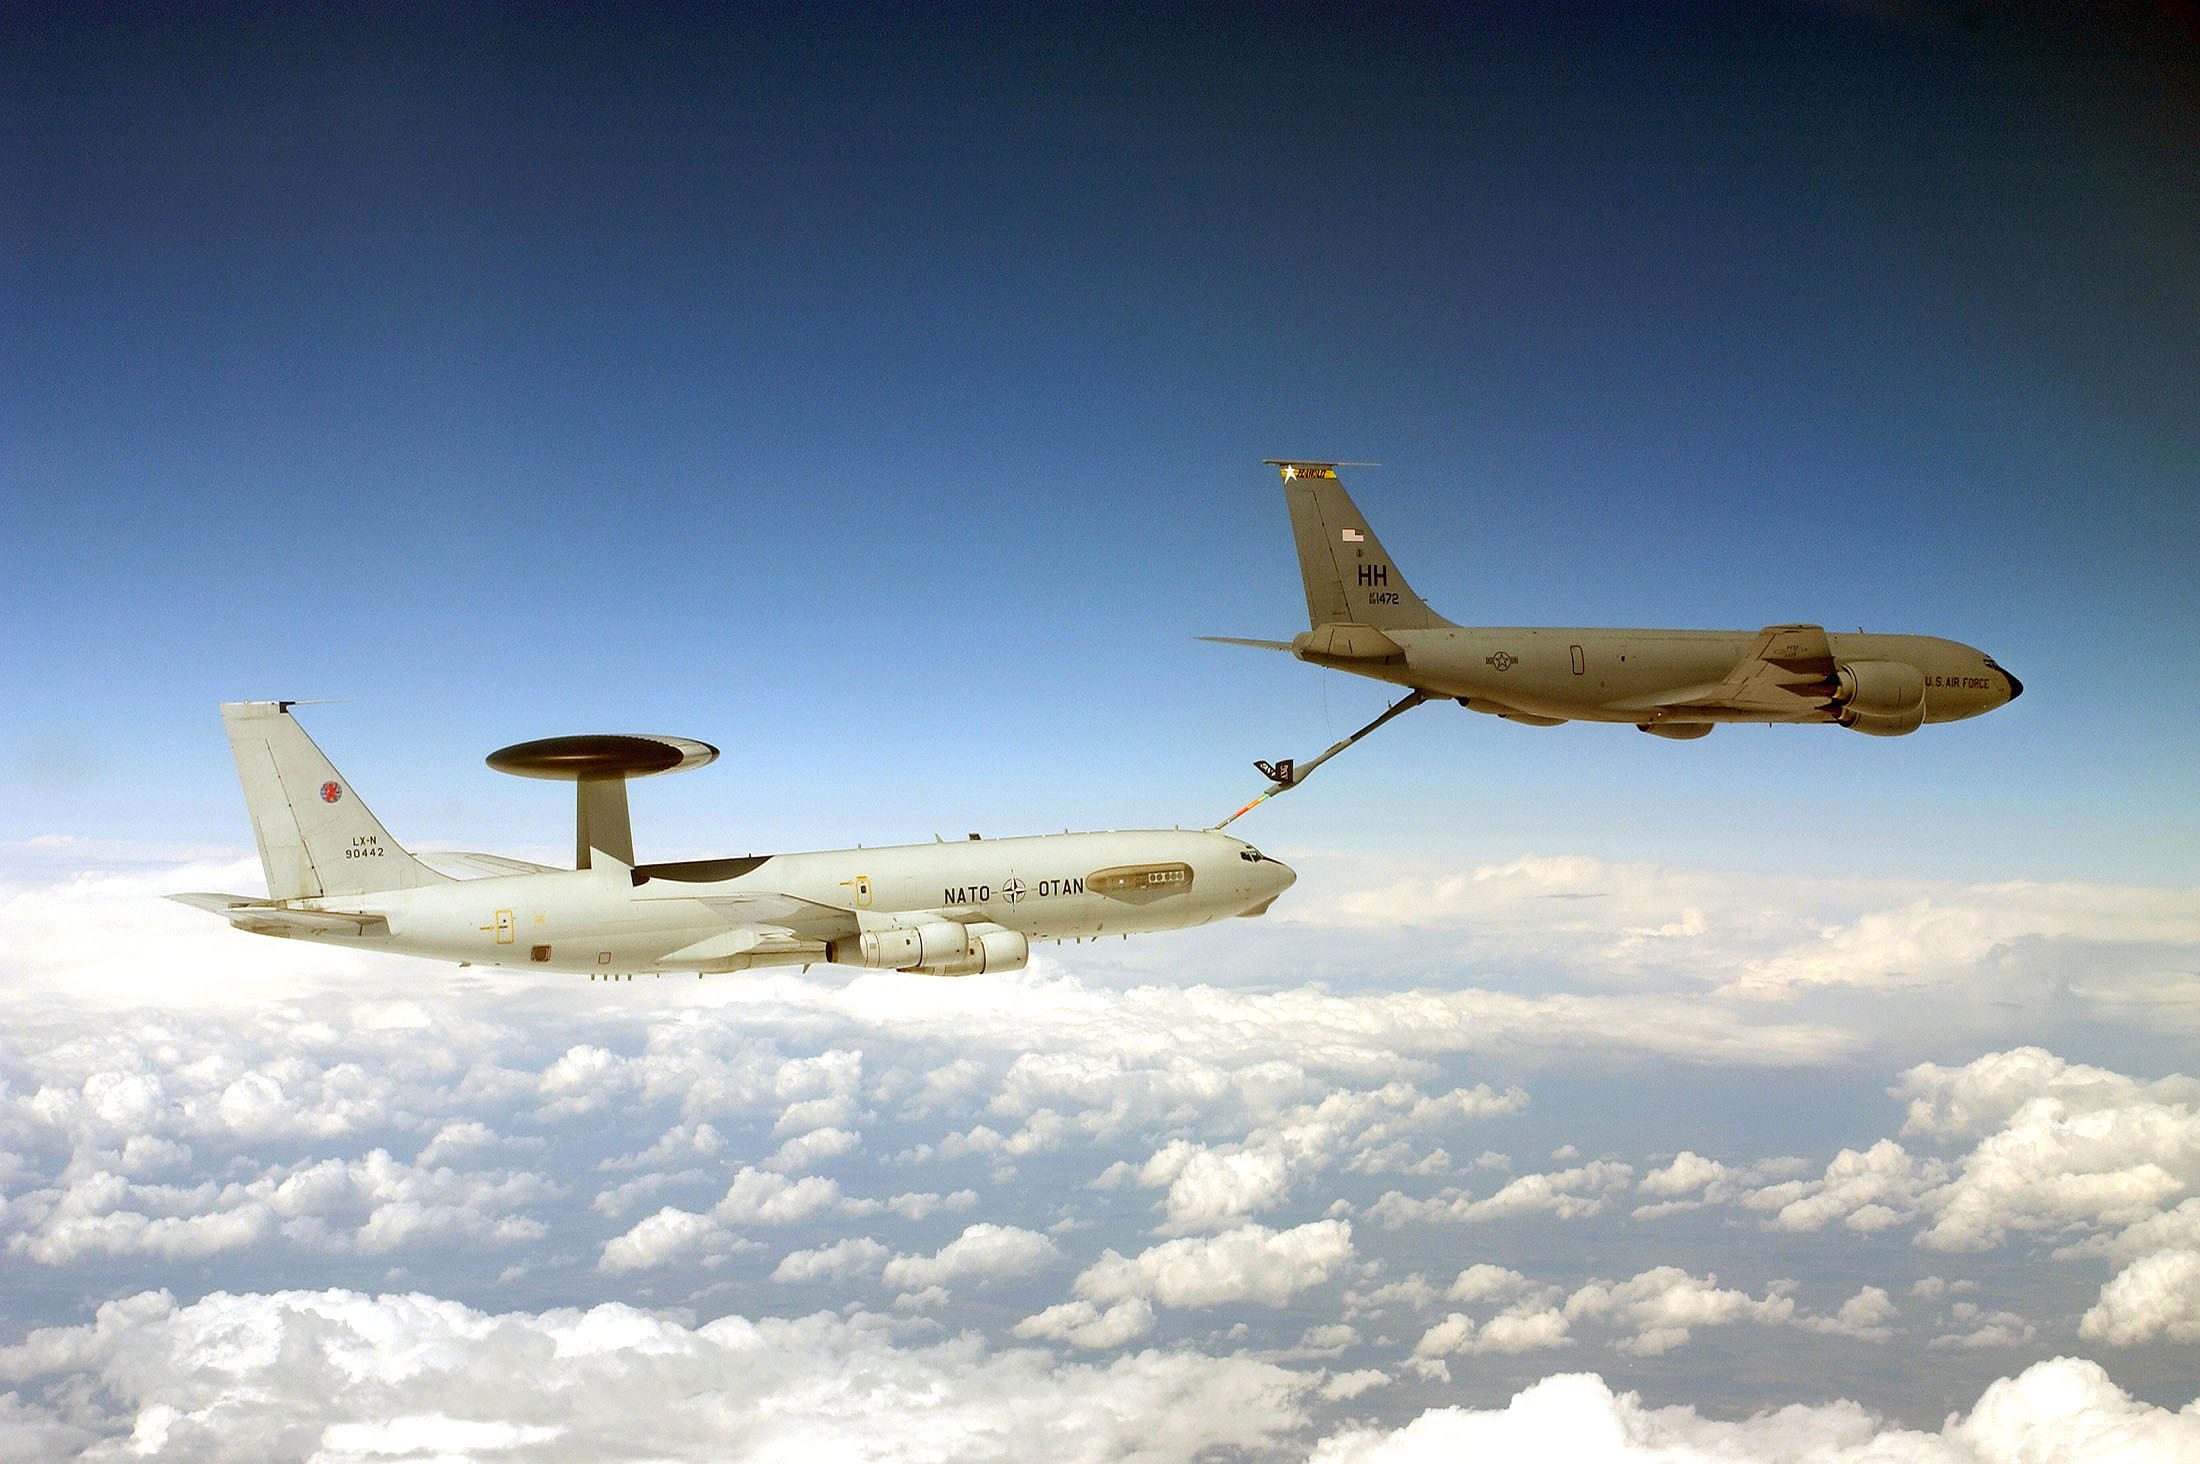 Nato Declassified Awacs In Action